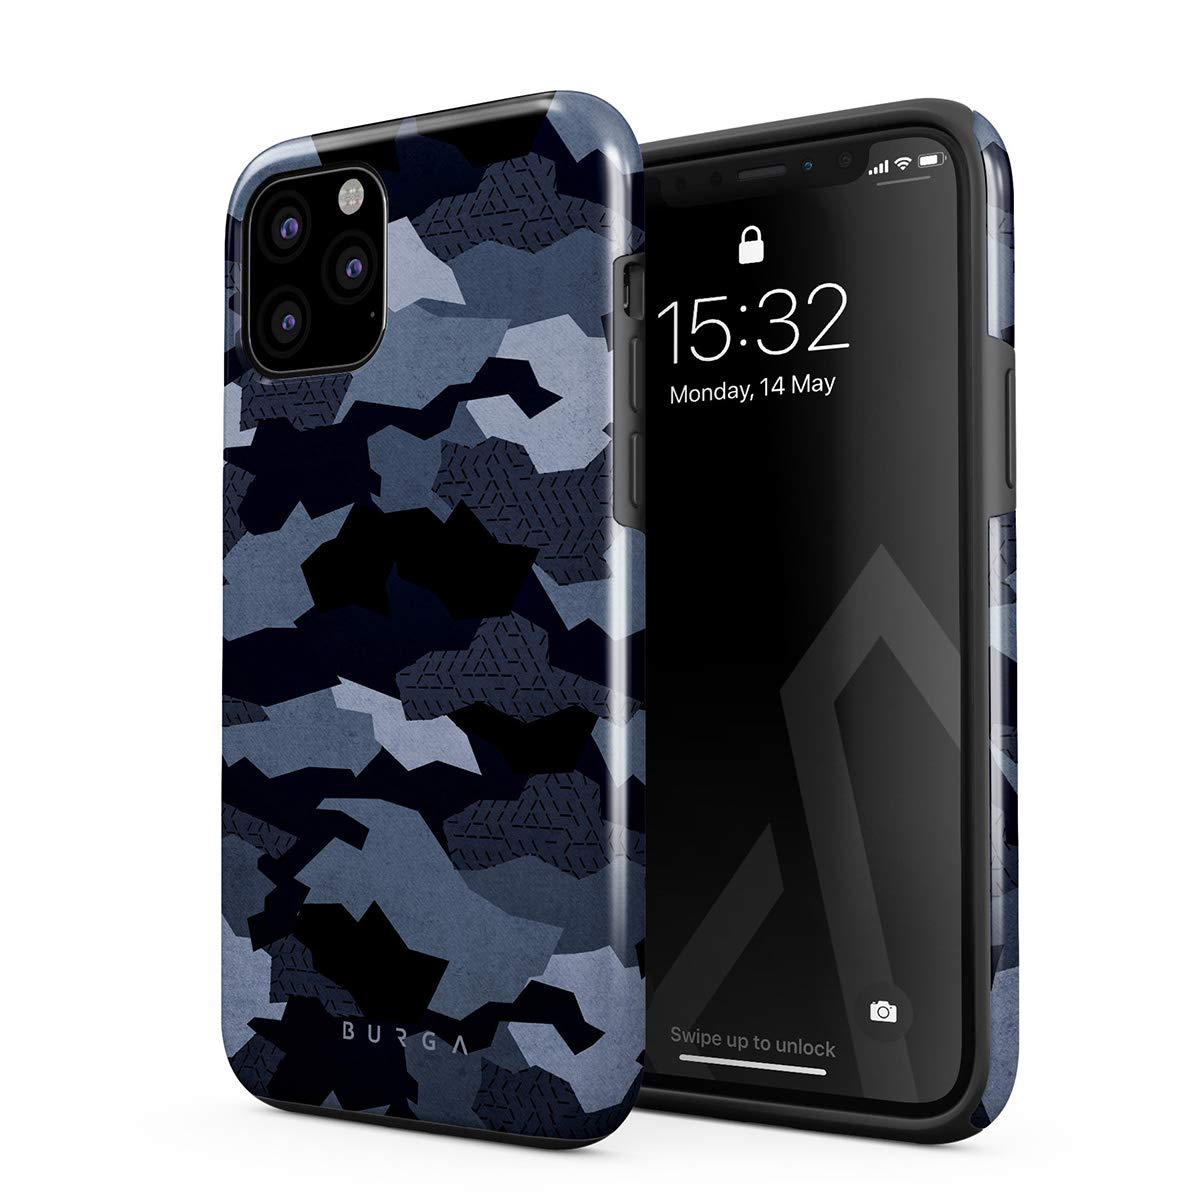 BURGA Phone Case Compatible with iPhone 11 PRO MAX - Navy Blue Camo Camouflage Cute Case for Girls Heavy Duty Shockproof Dual Layer Hard Shell + Silicone Protective Cover